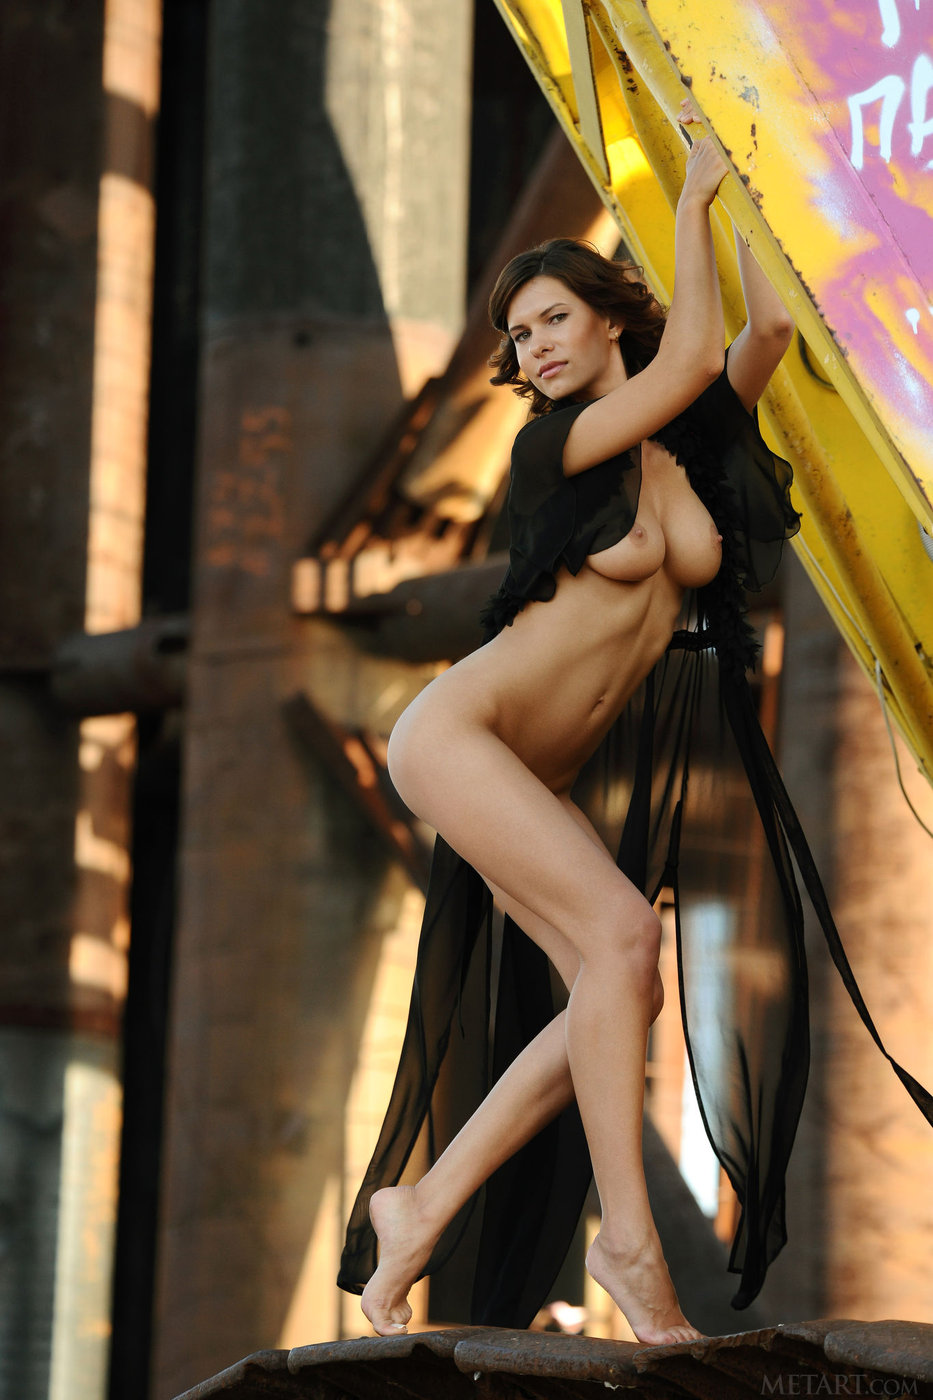 Short-haired brunette posing naked next to some heavy machinery